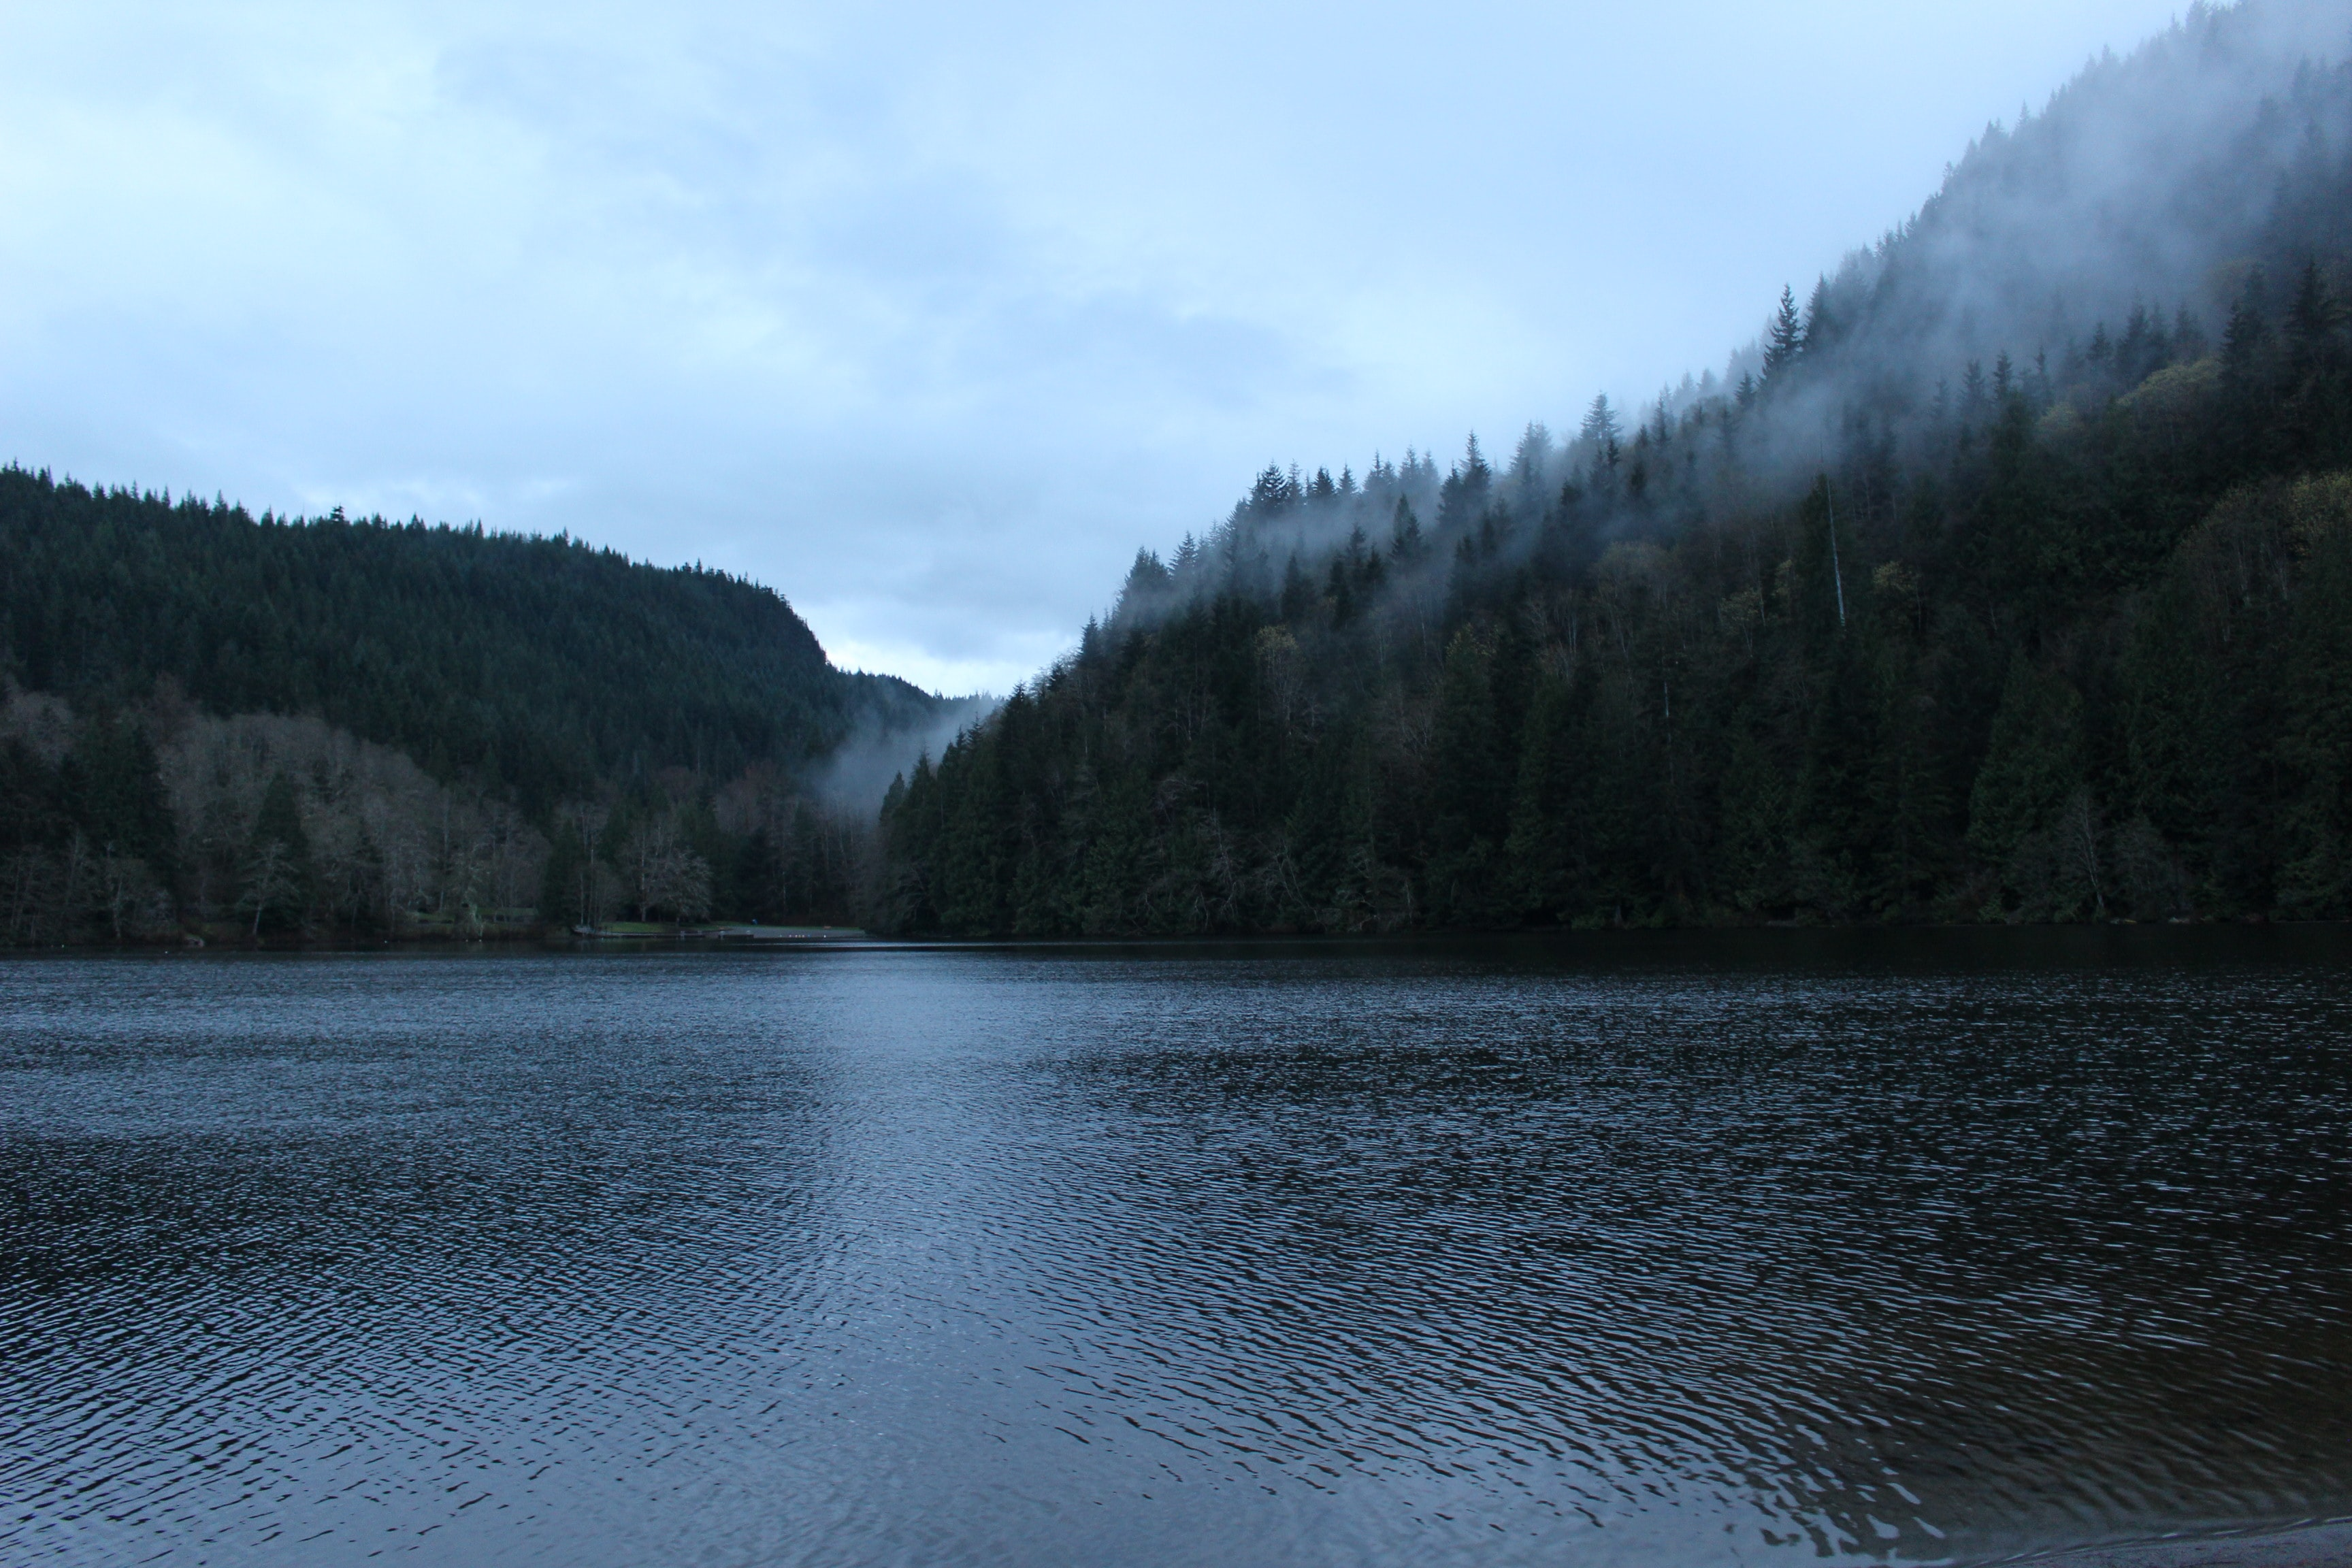 Choppy surface of a lake near woody shored enveloped with a patchy fog